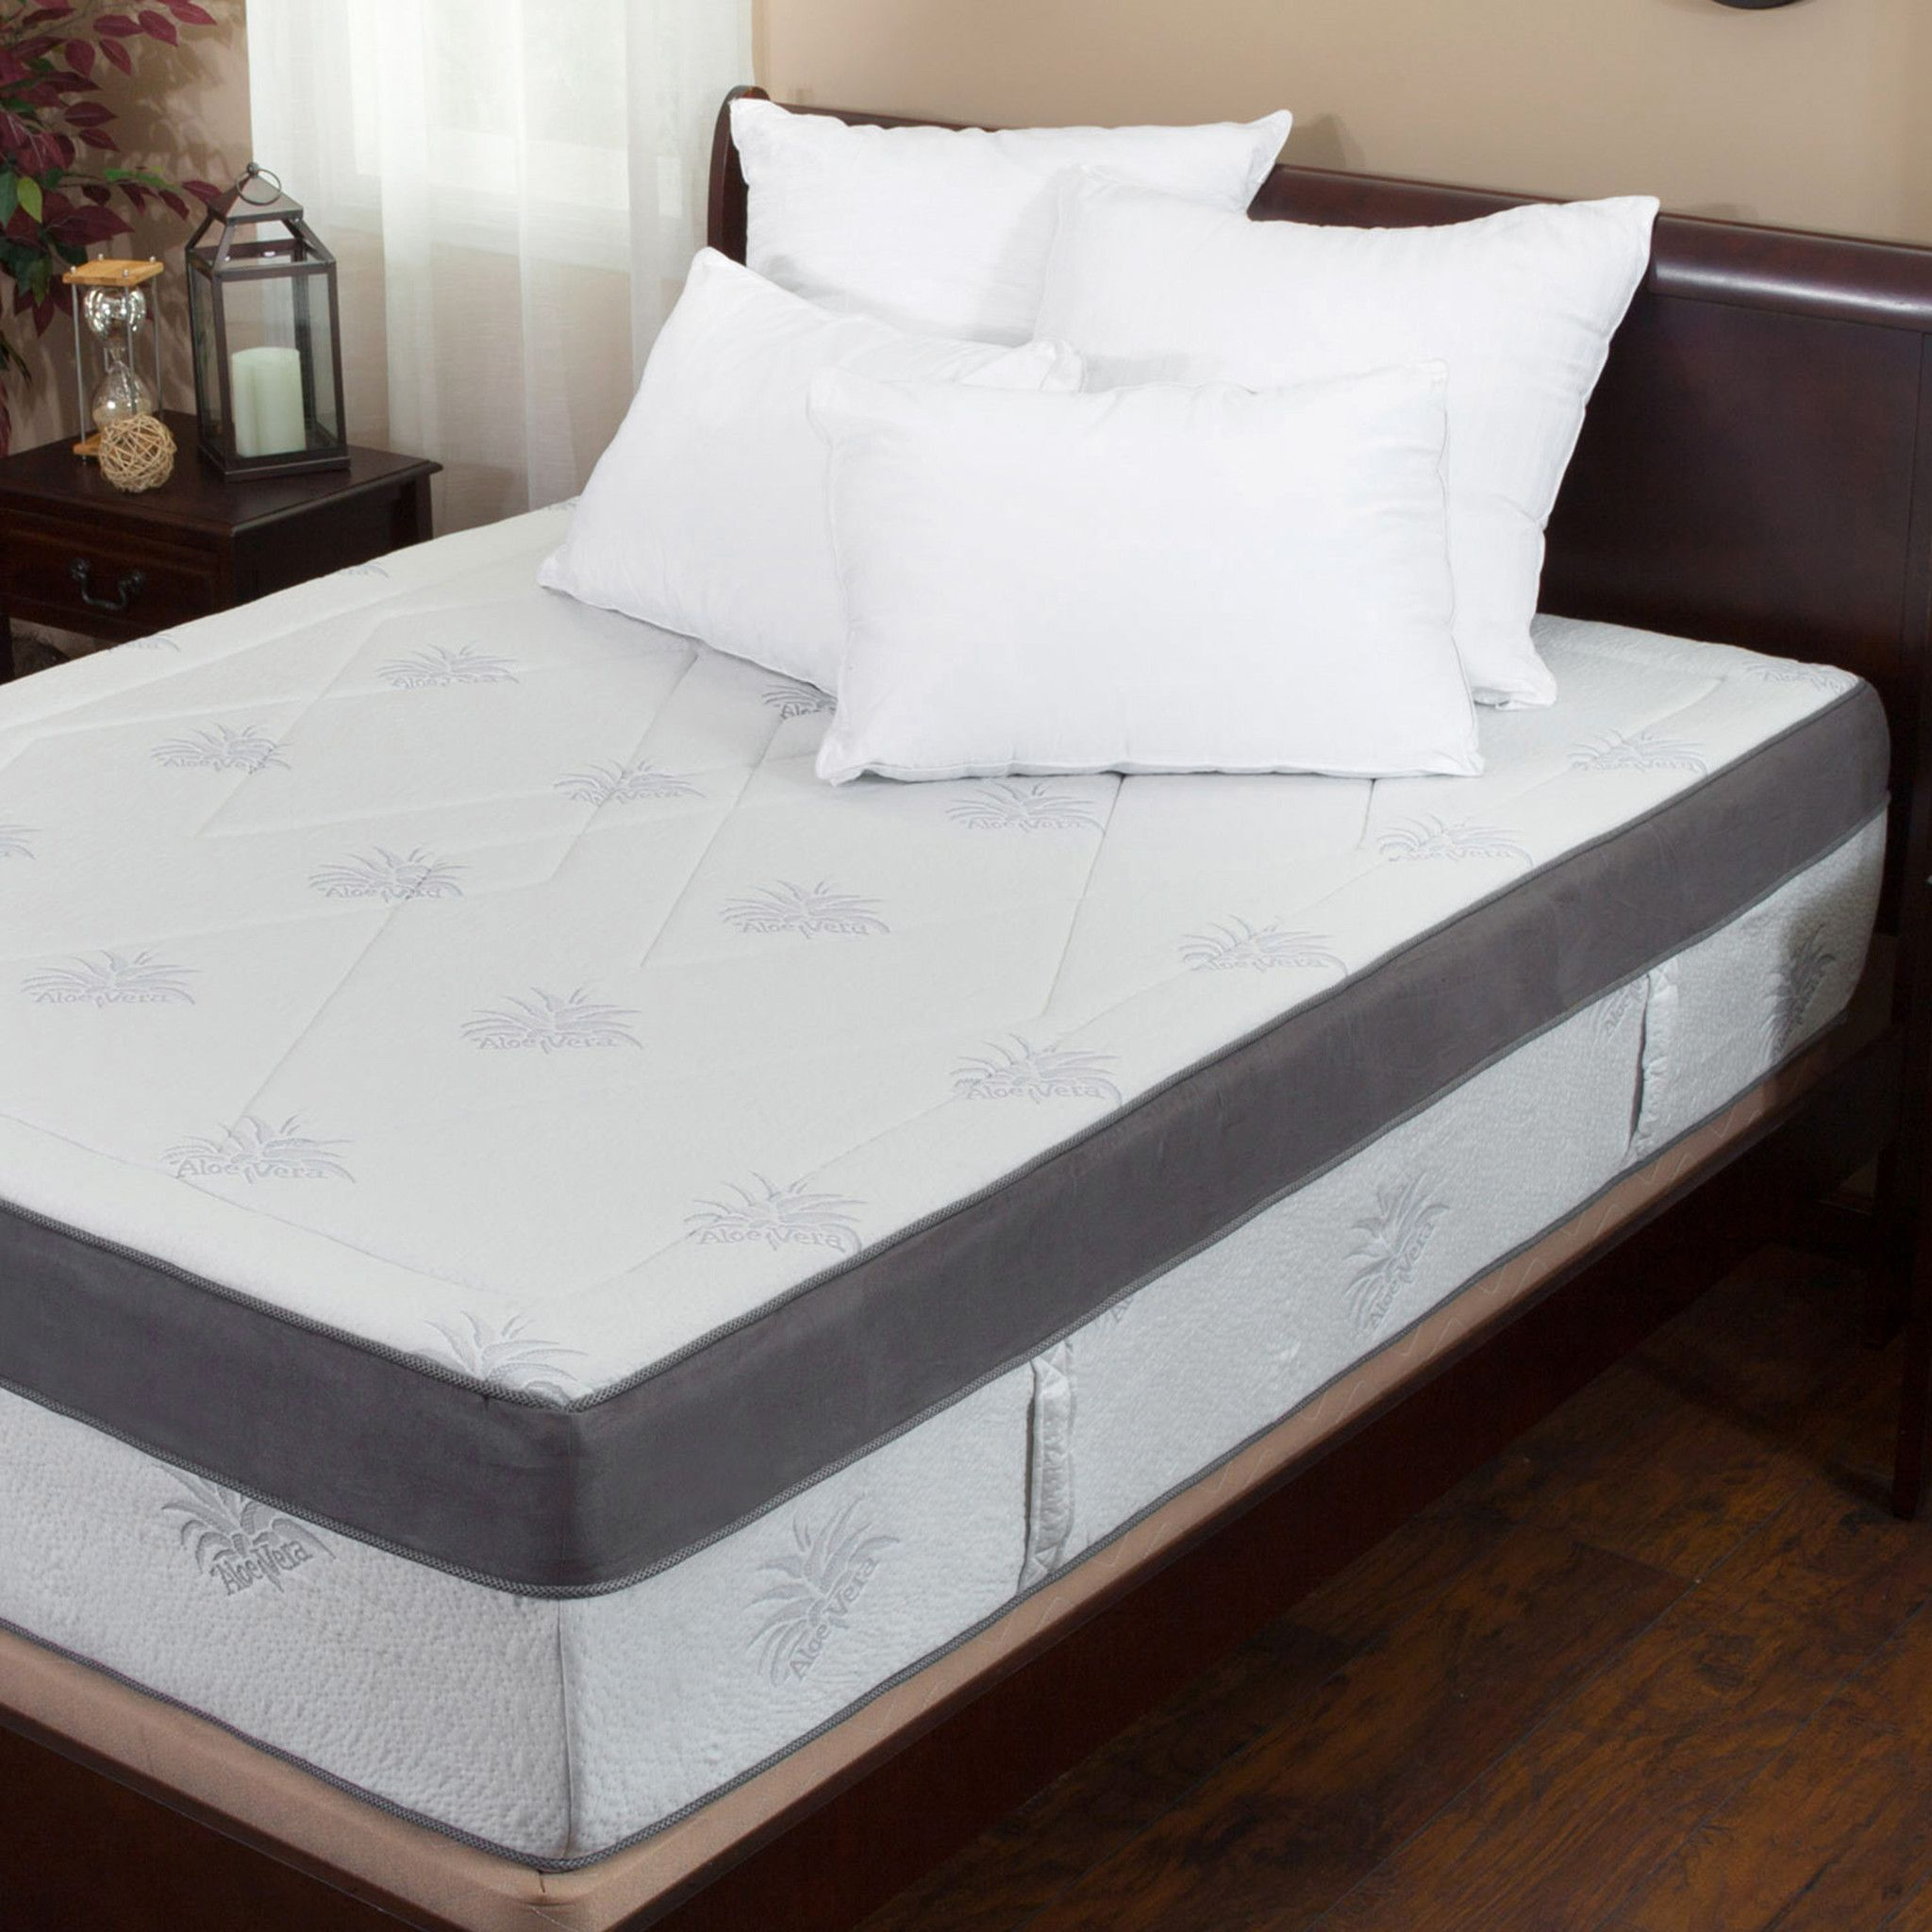 ad aloe gel infused memory foam 15 inch queen size mattress built